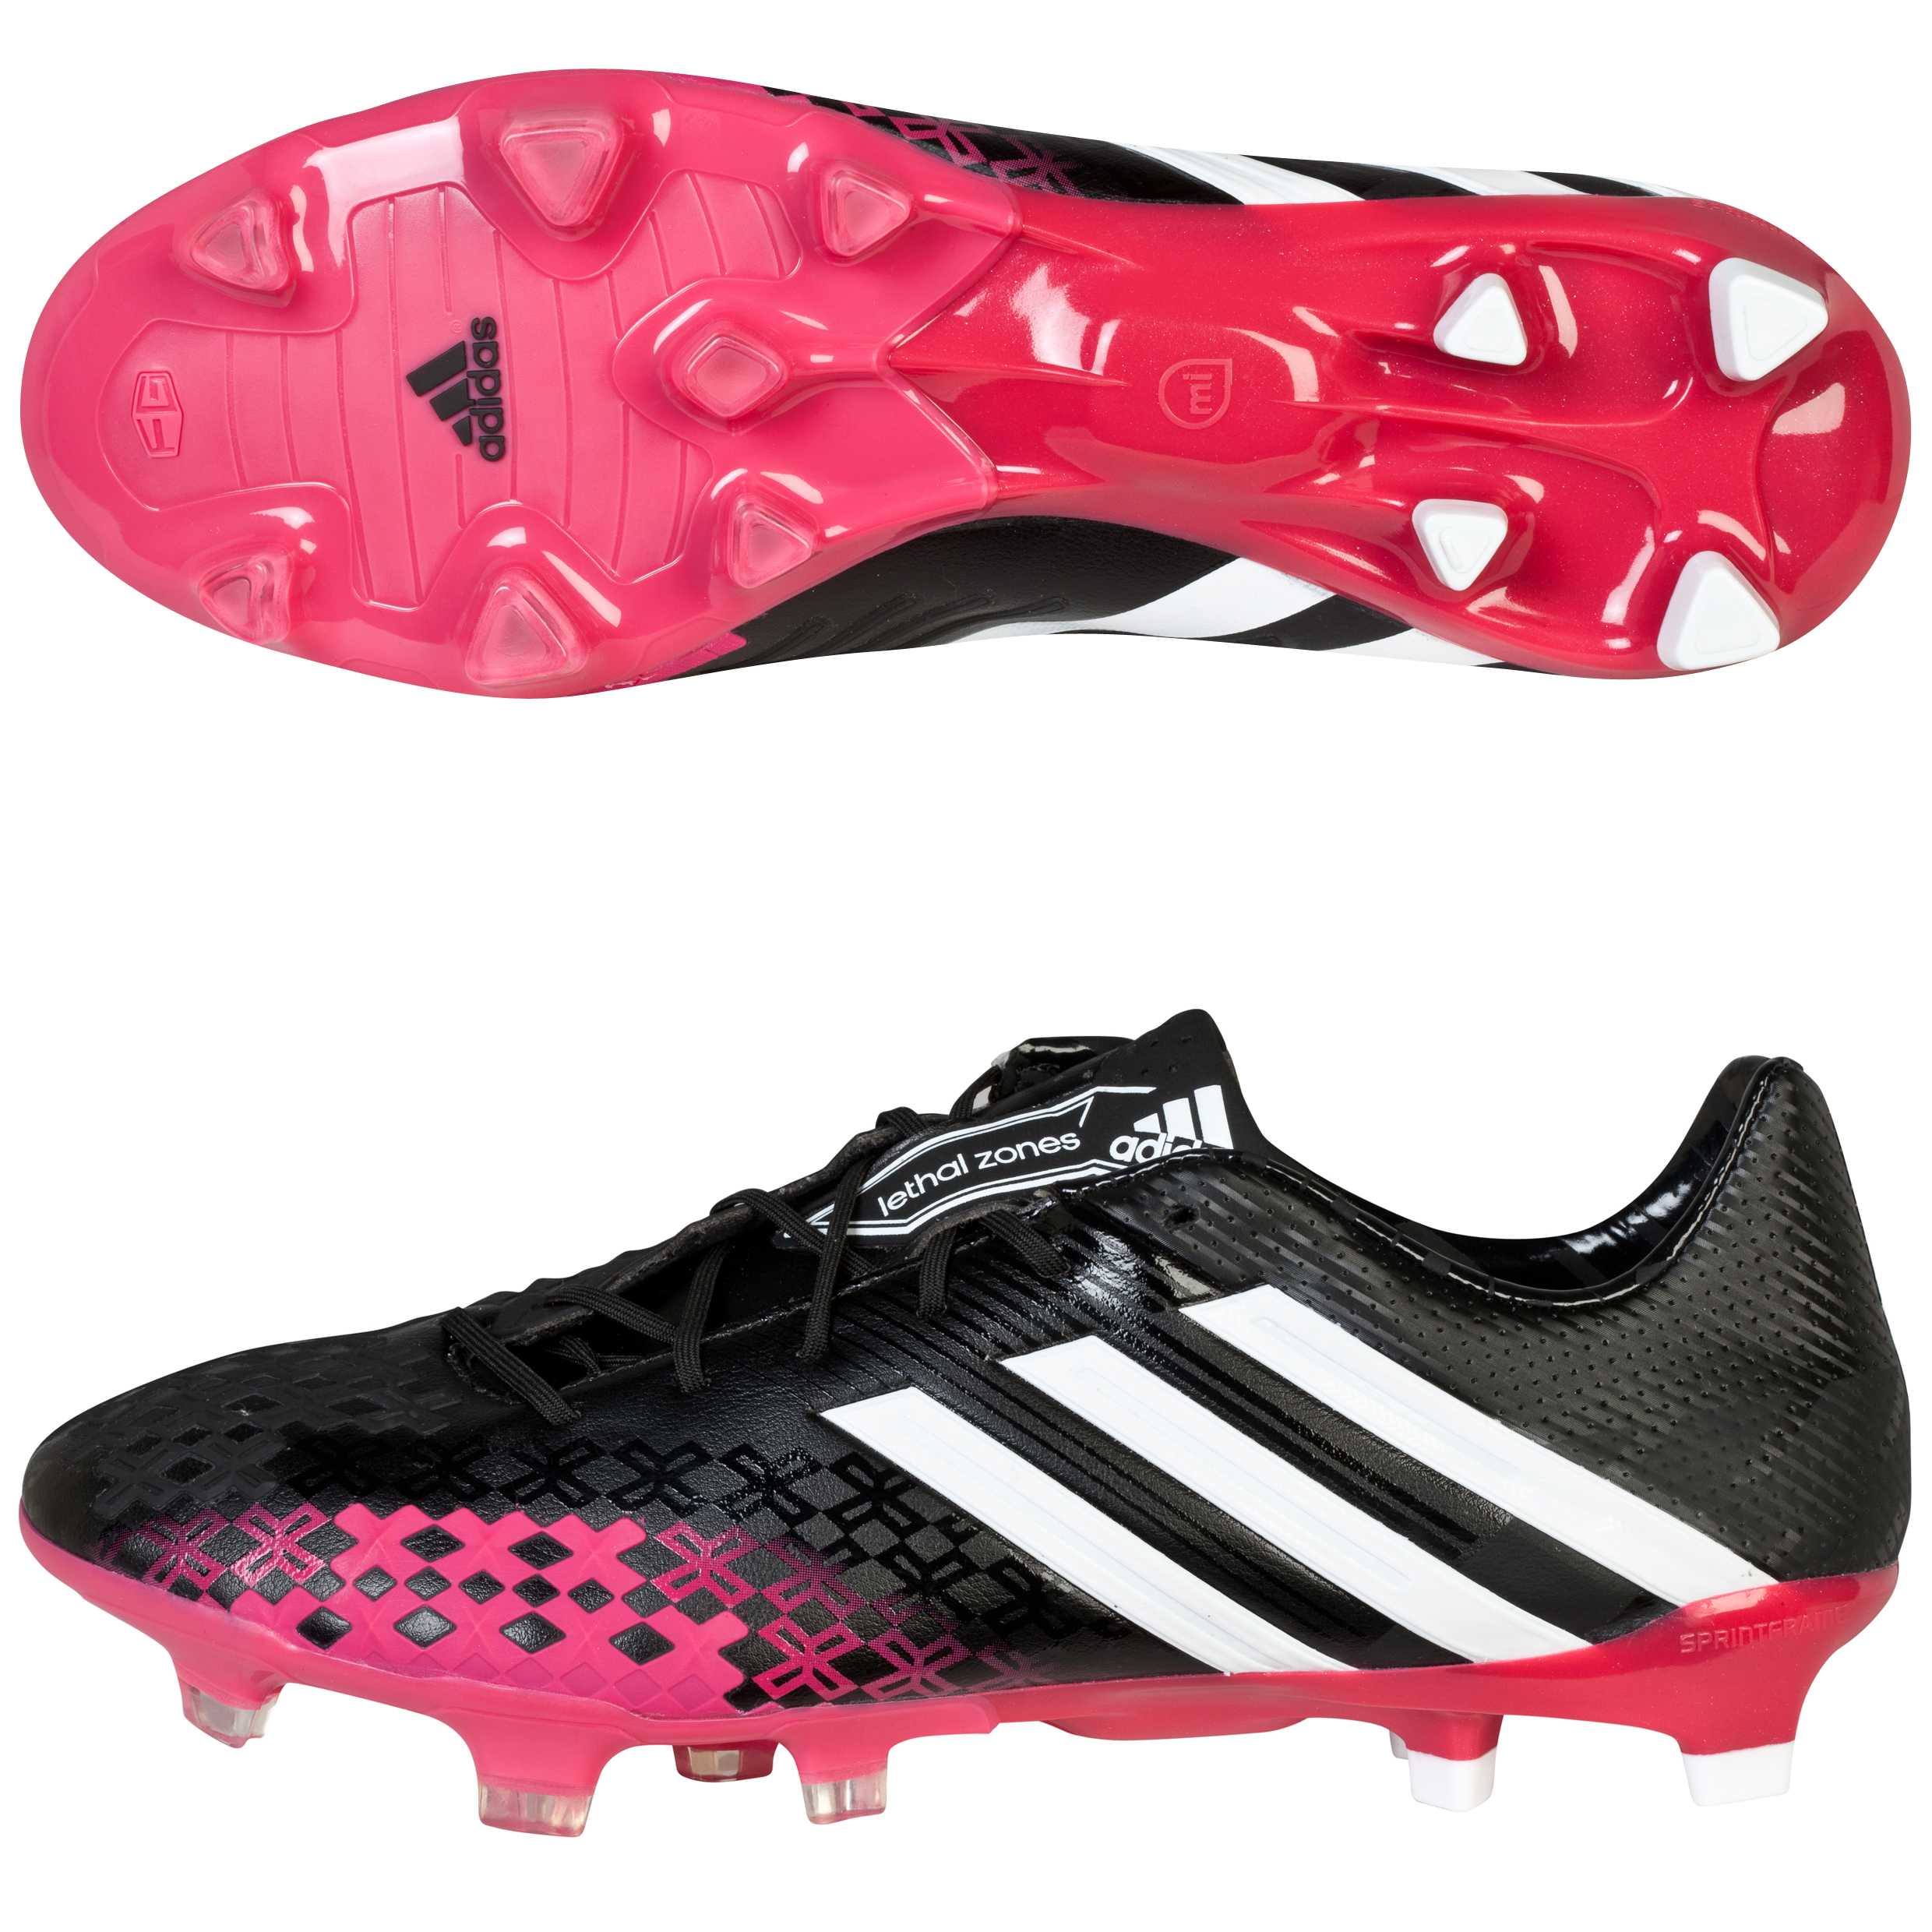 Adidas Predator LZ TRX Firm Ground Black